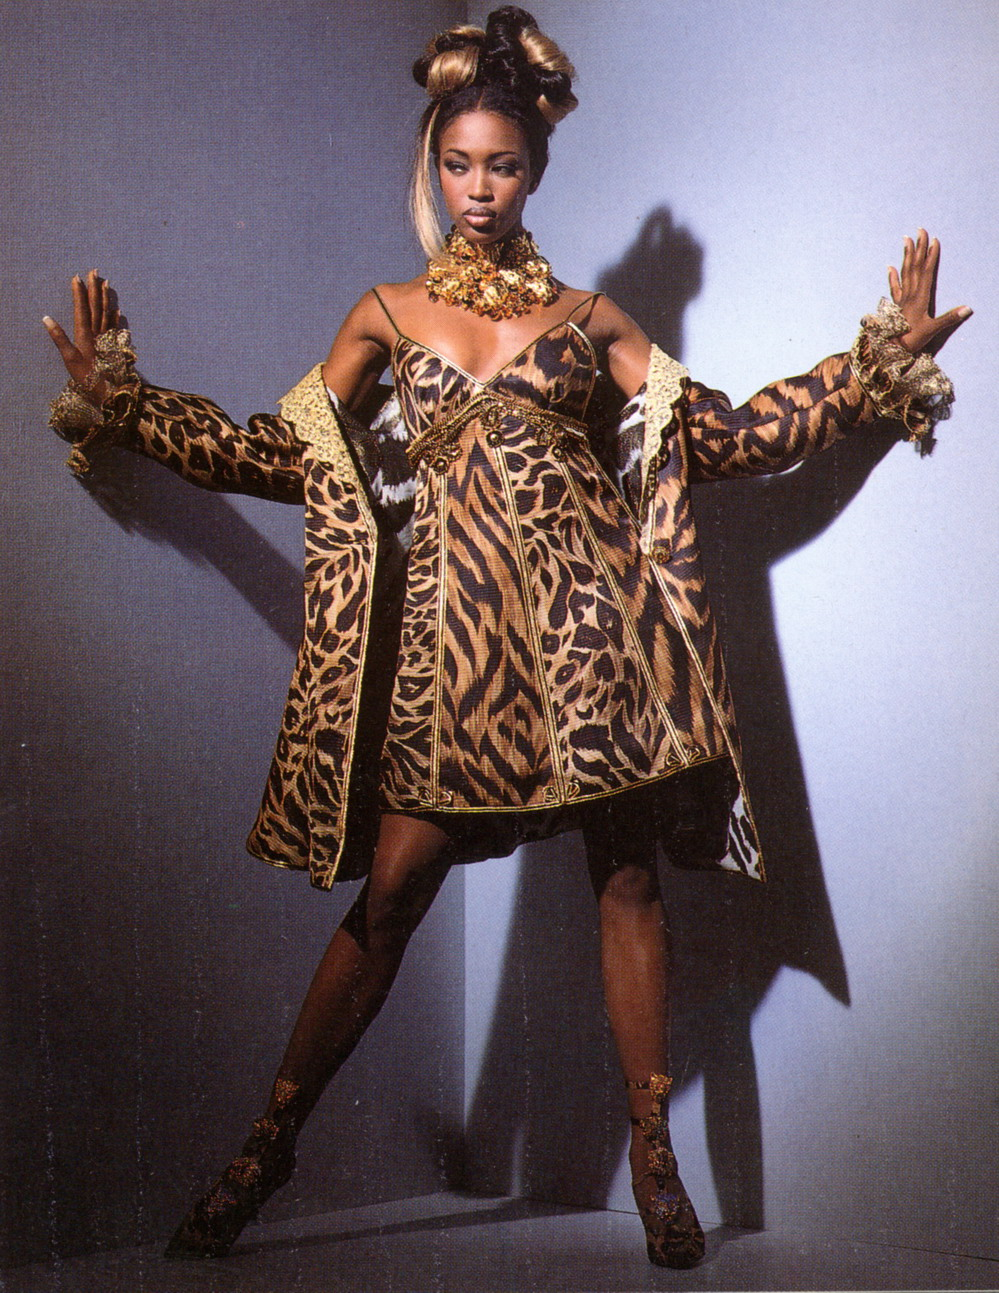 Naomi Campbell in Gianni Versace Ensemble, photographed by Patrick Demarchelier for Vogue, 1992, forrás: theredlist.com